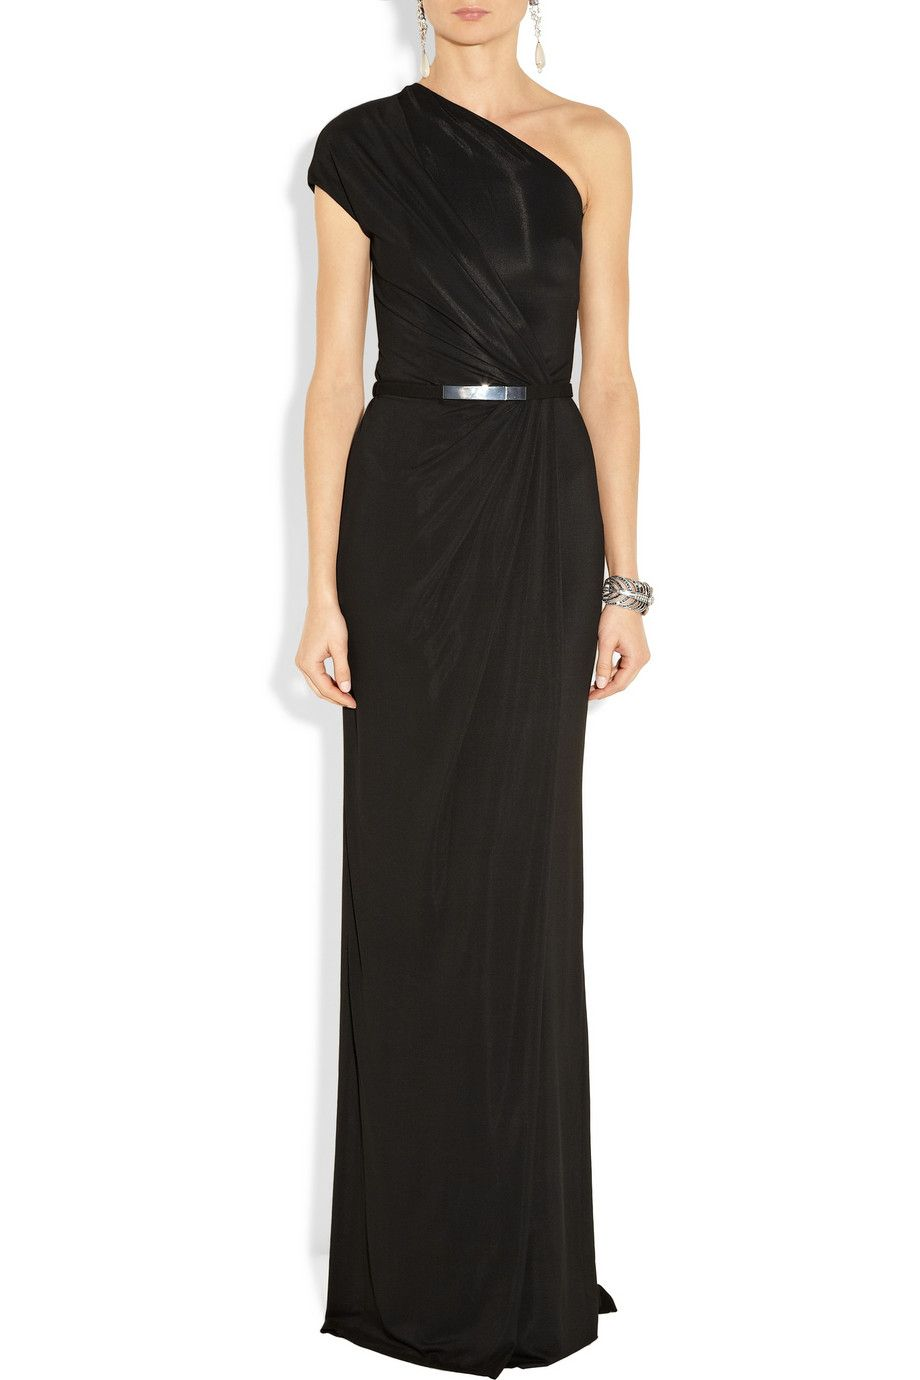 Kaufmanfranco draped crepejersey gown dresses pinterest